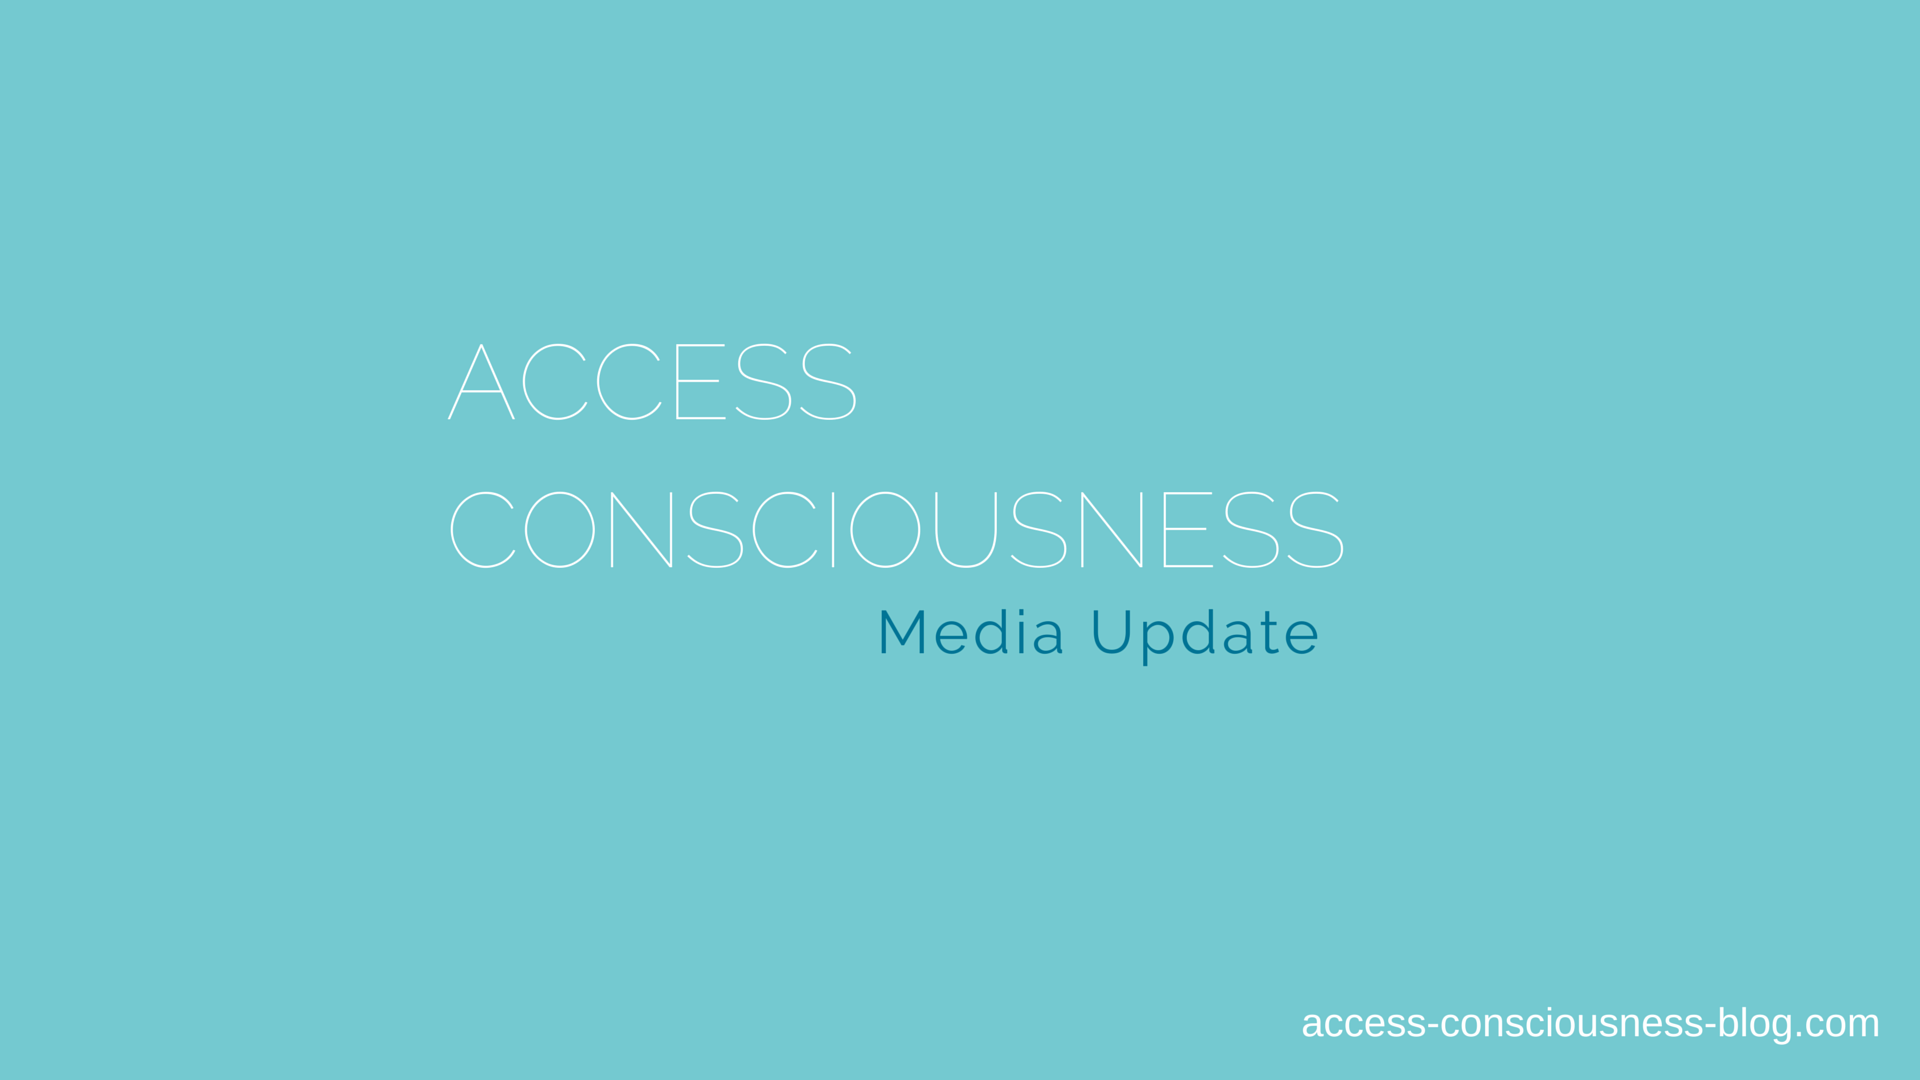 Access in the Headlines: Media Update